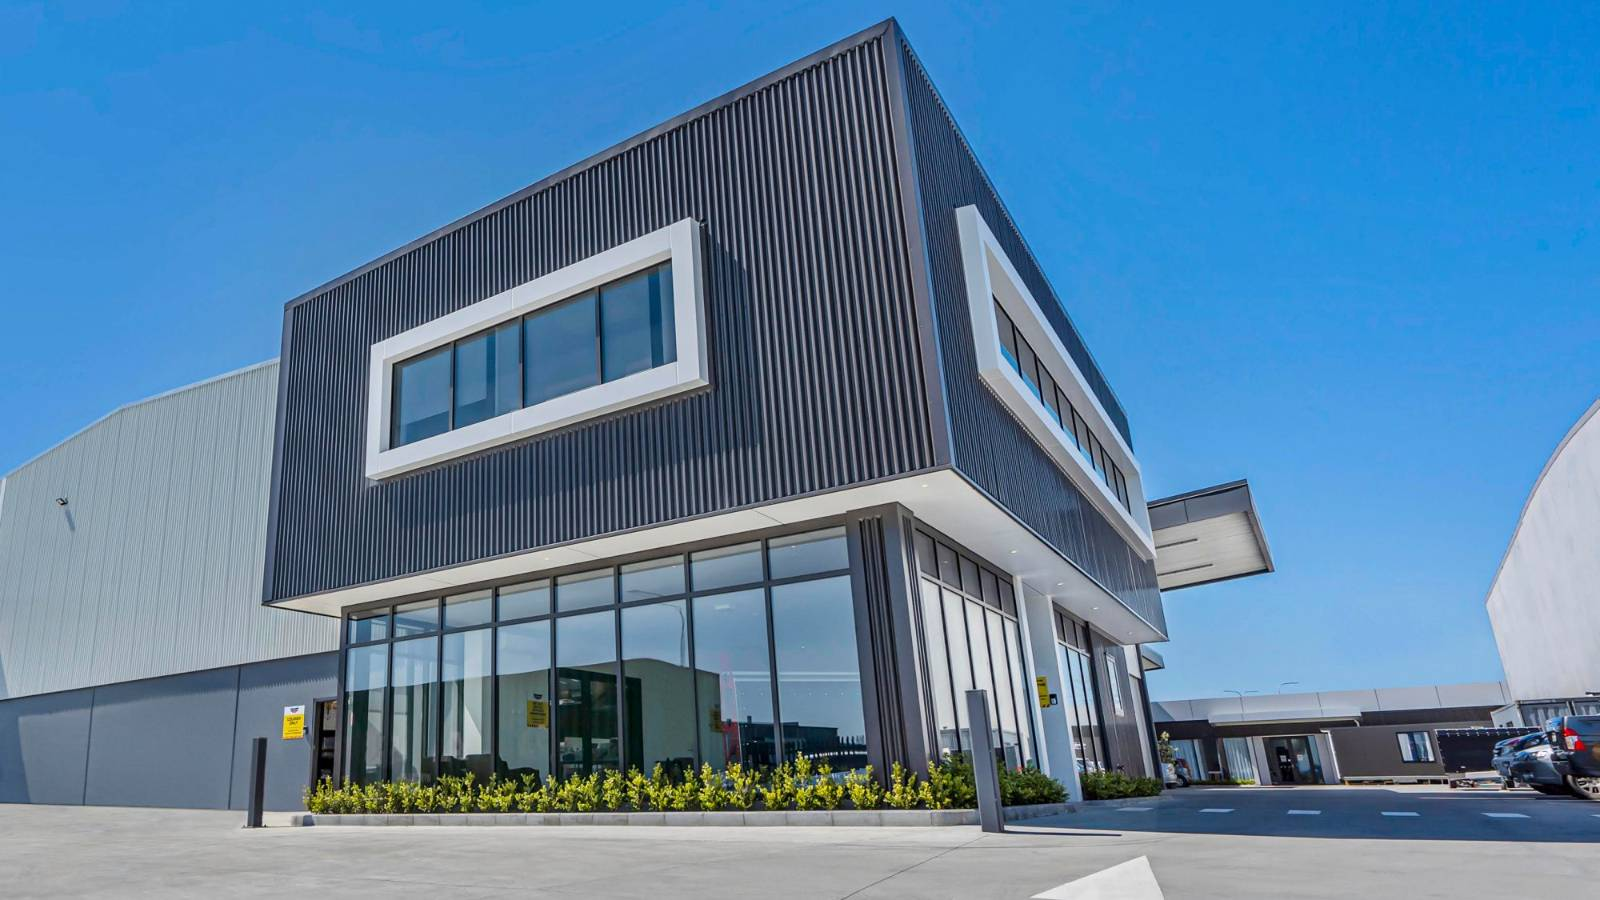 E-commerce driving industrial property demand